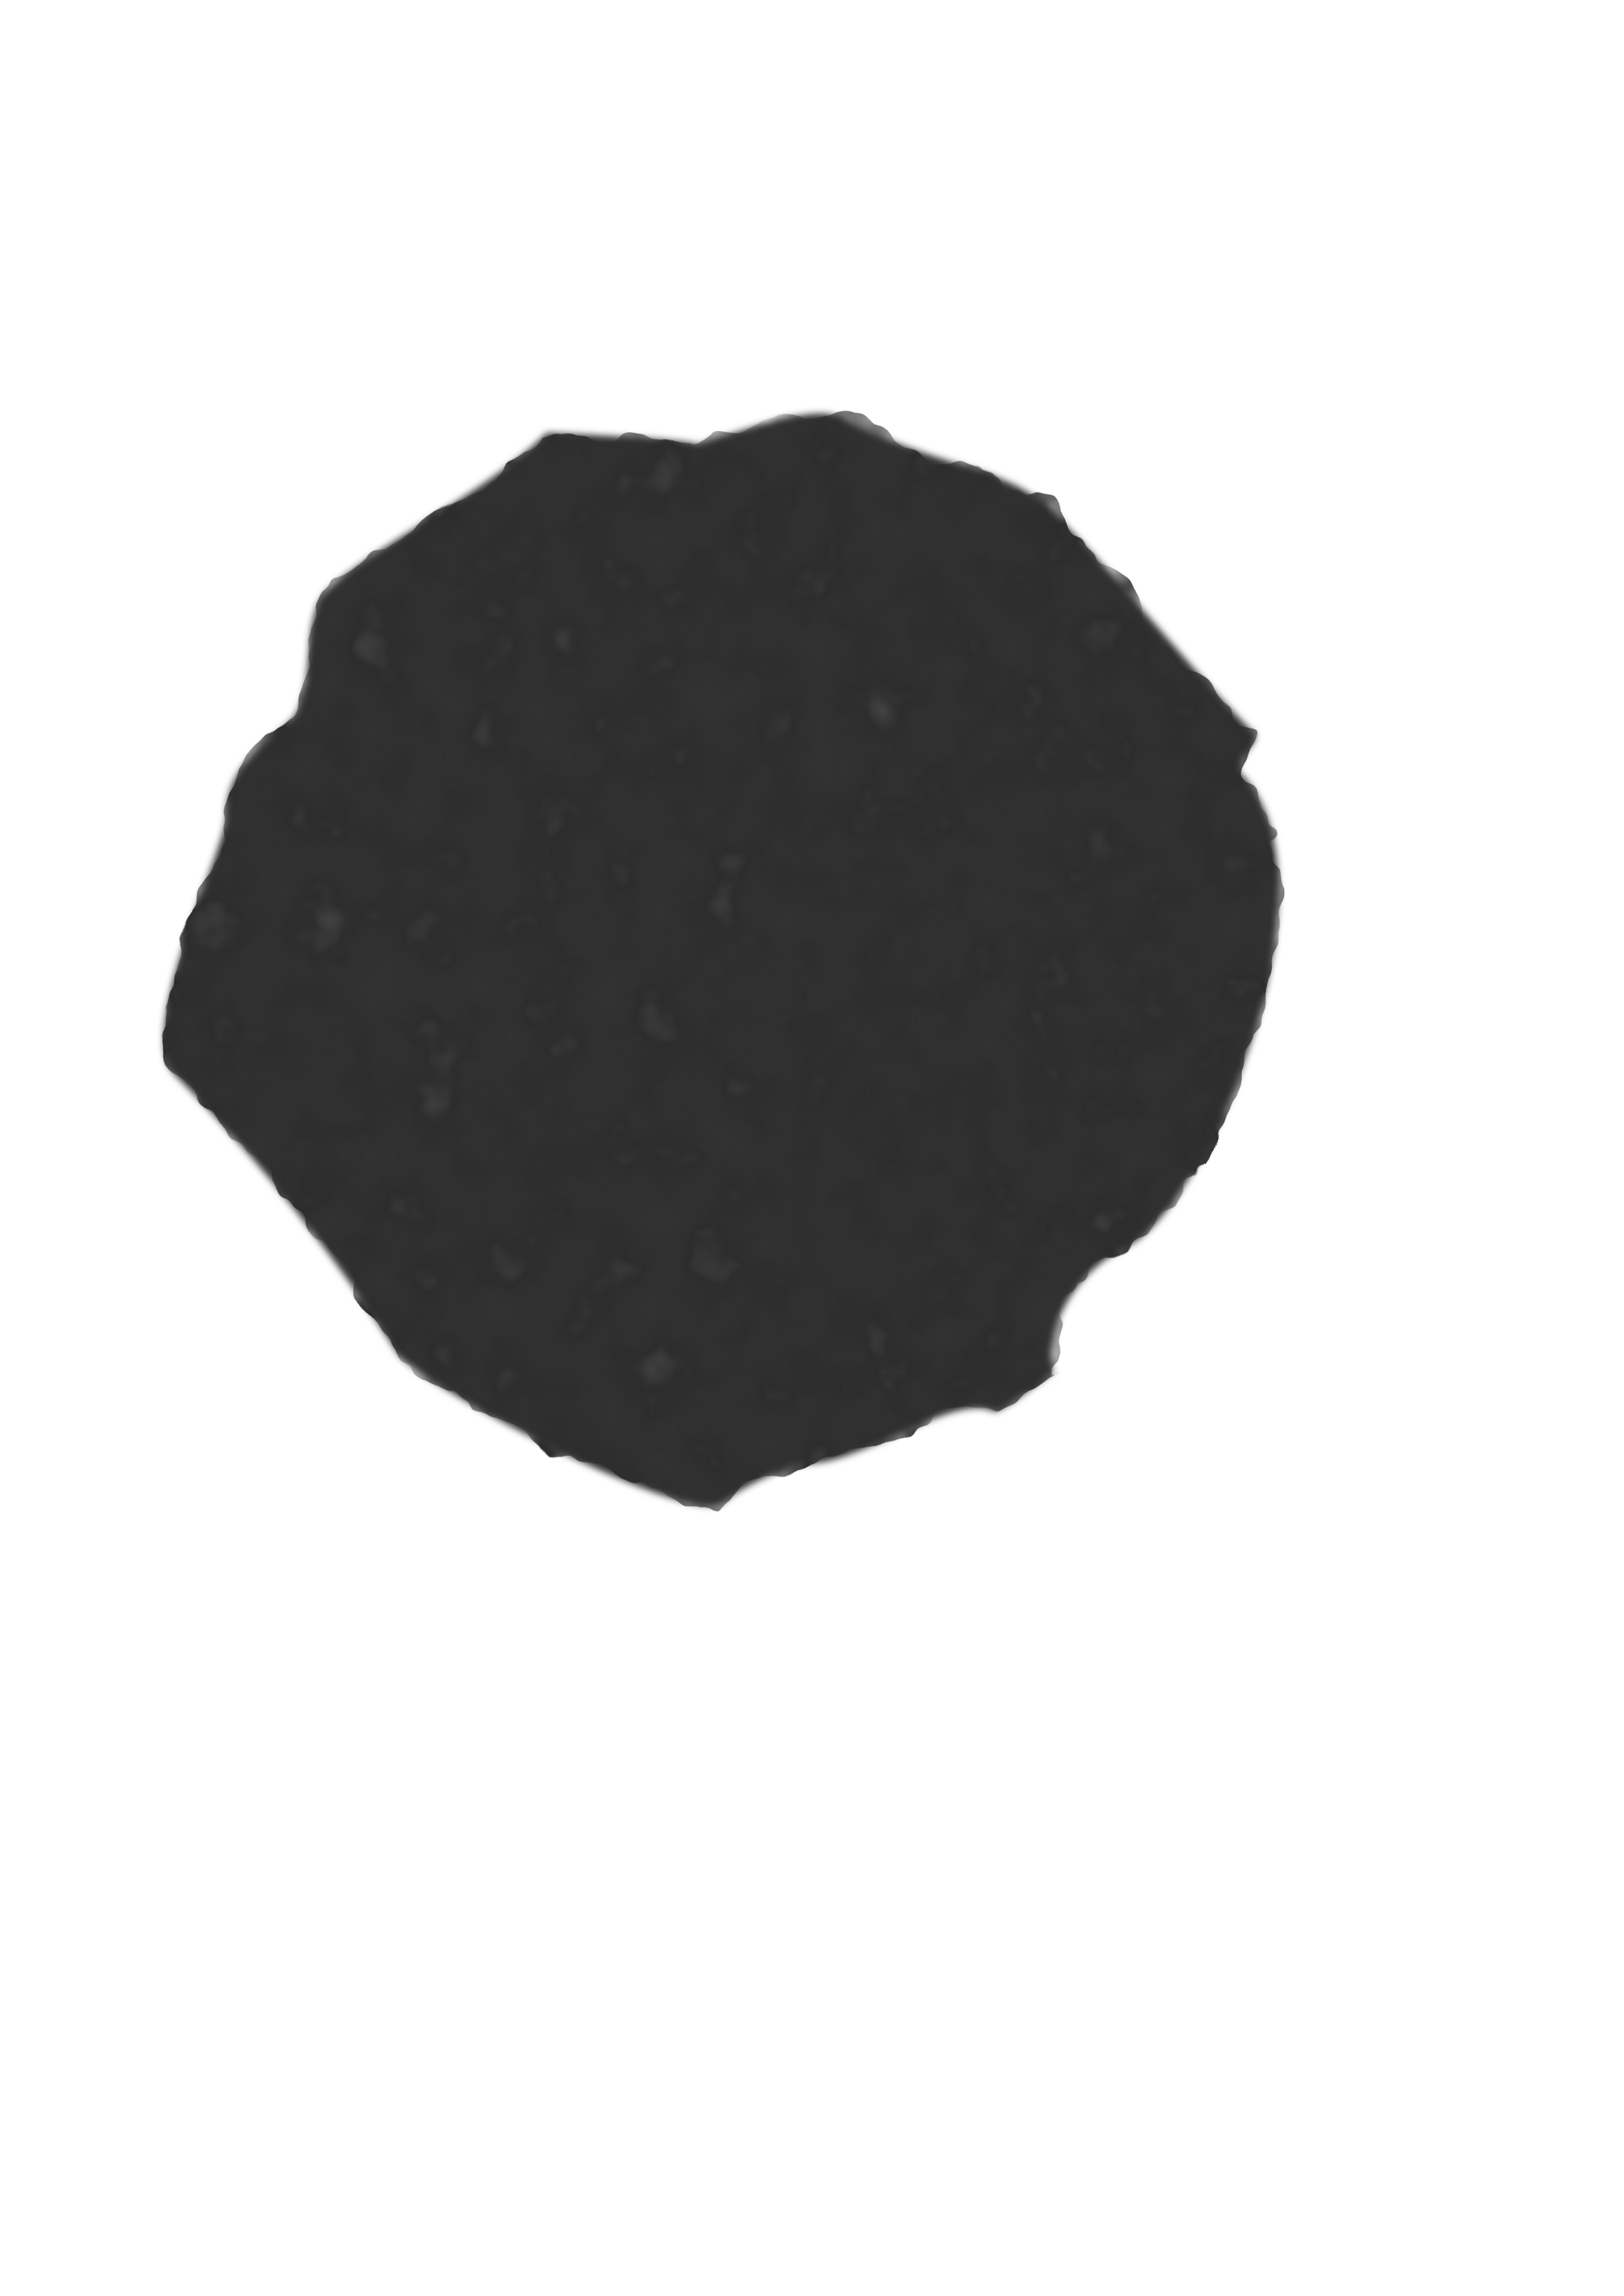 Remix no shading big. Asteroid clipart space rock